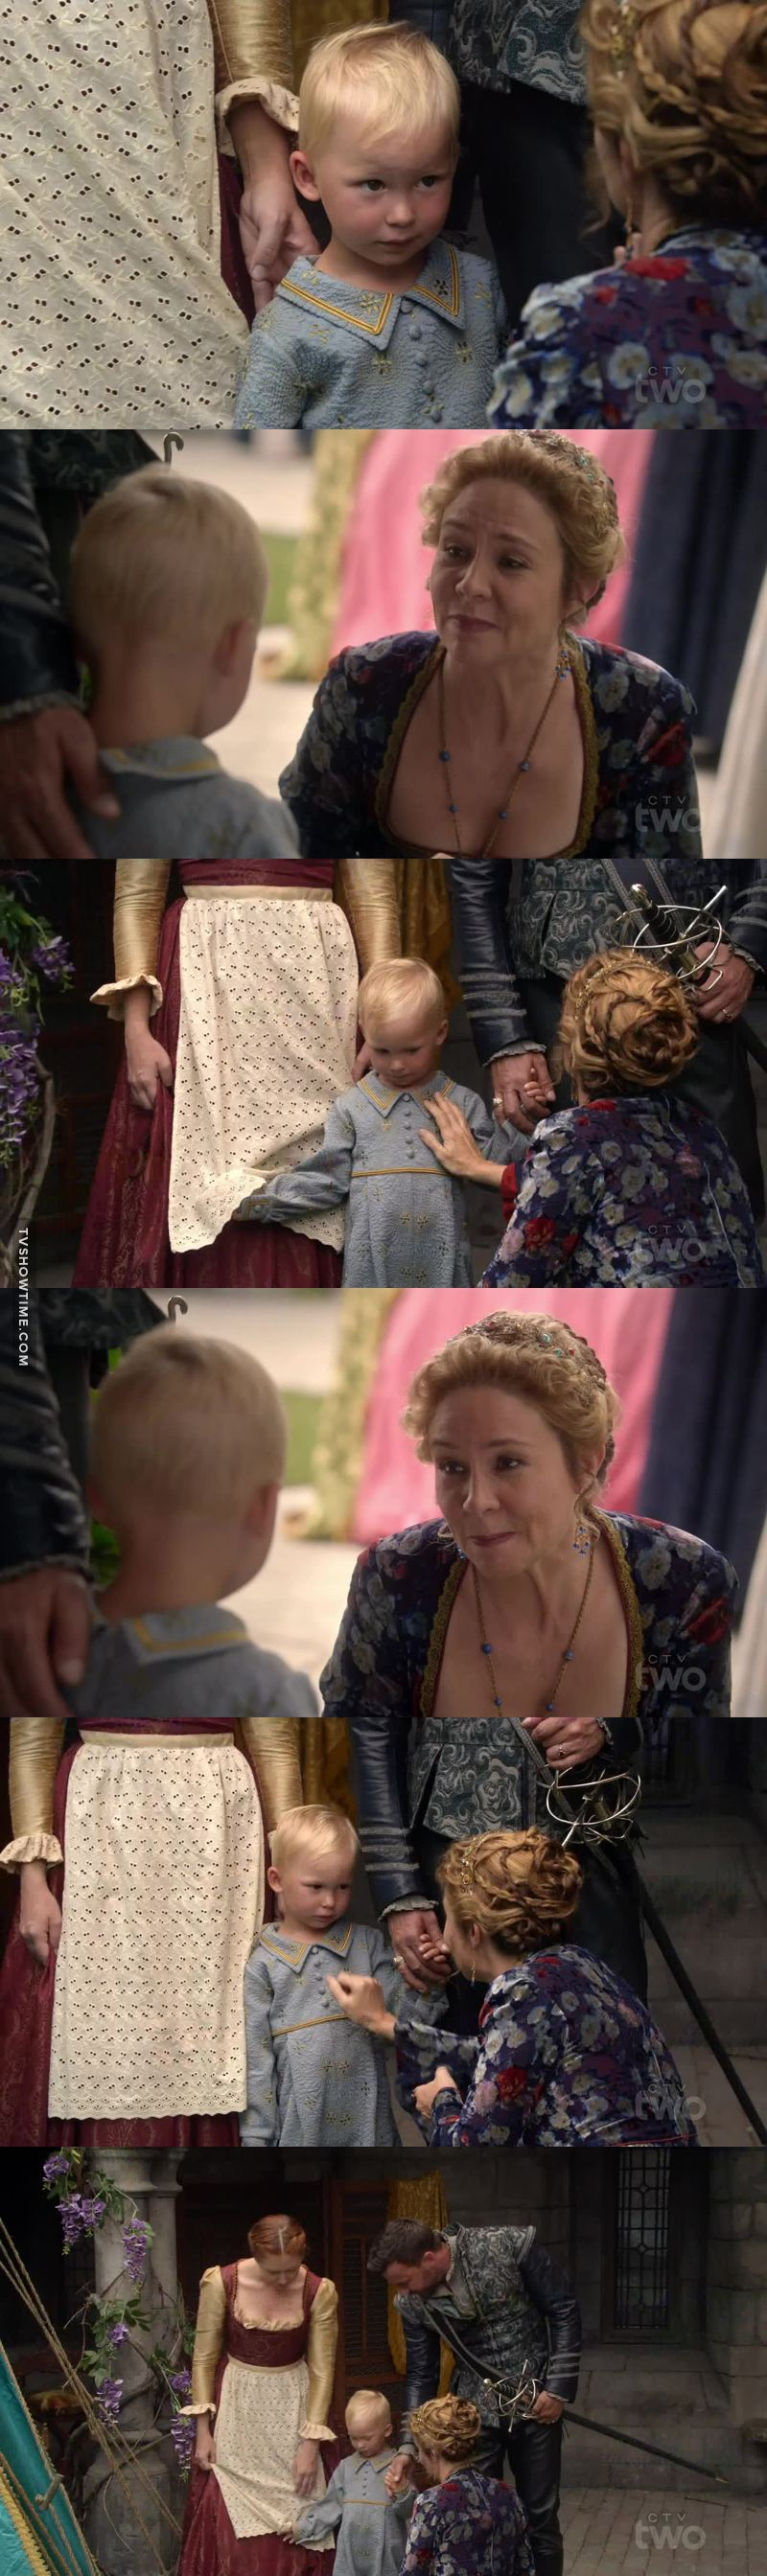 this scene melted my heart, catherine was so sweet with the kid and look at her face😻